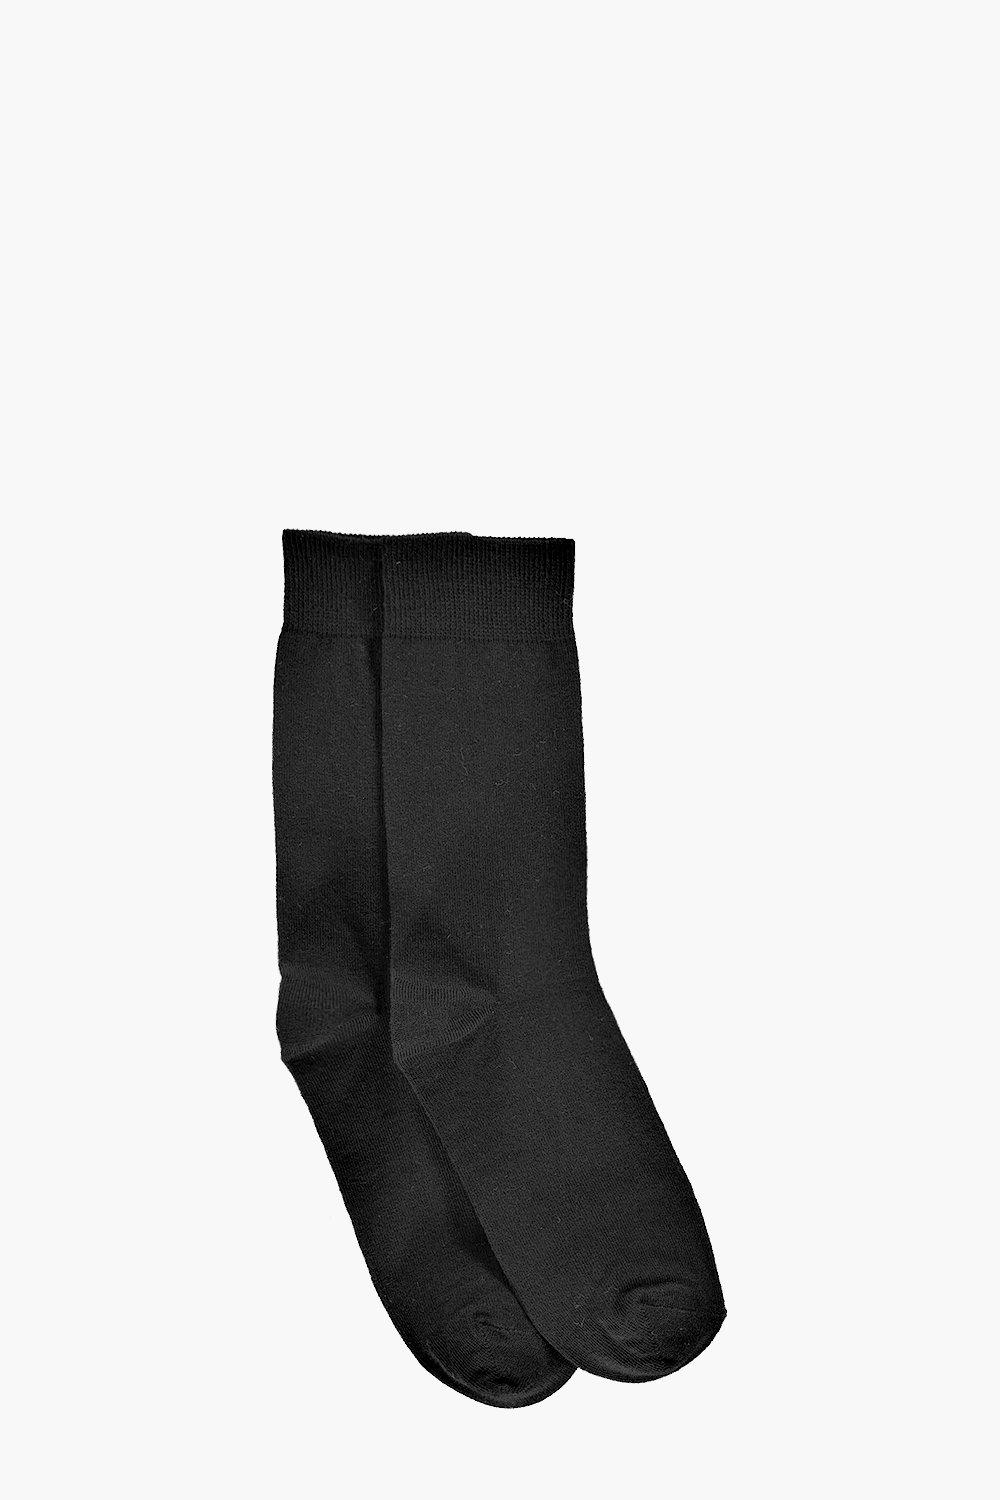 2 Pack Plain Black Cotton Socks